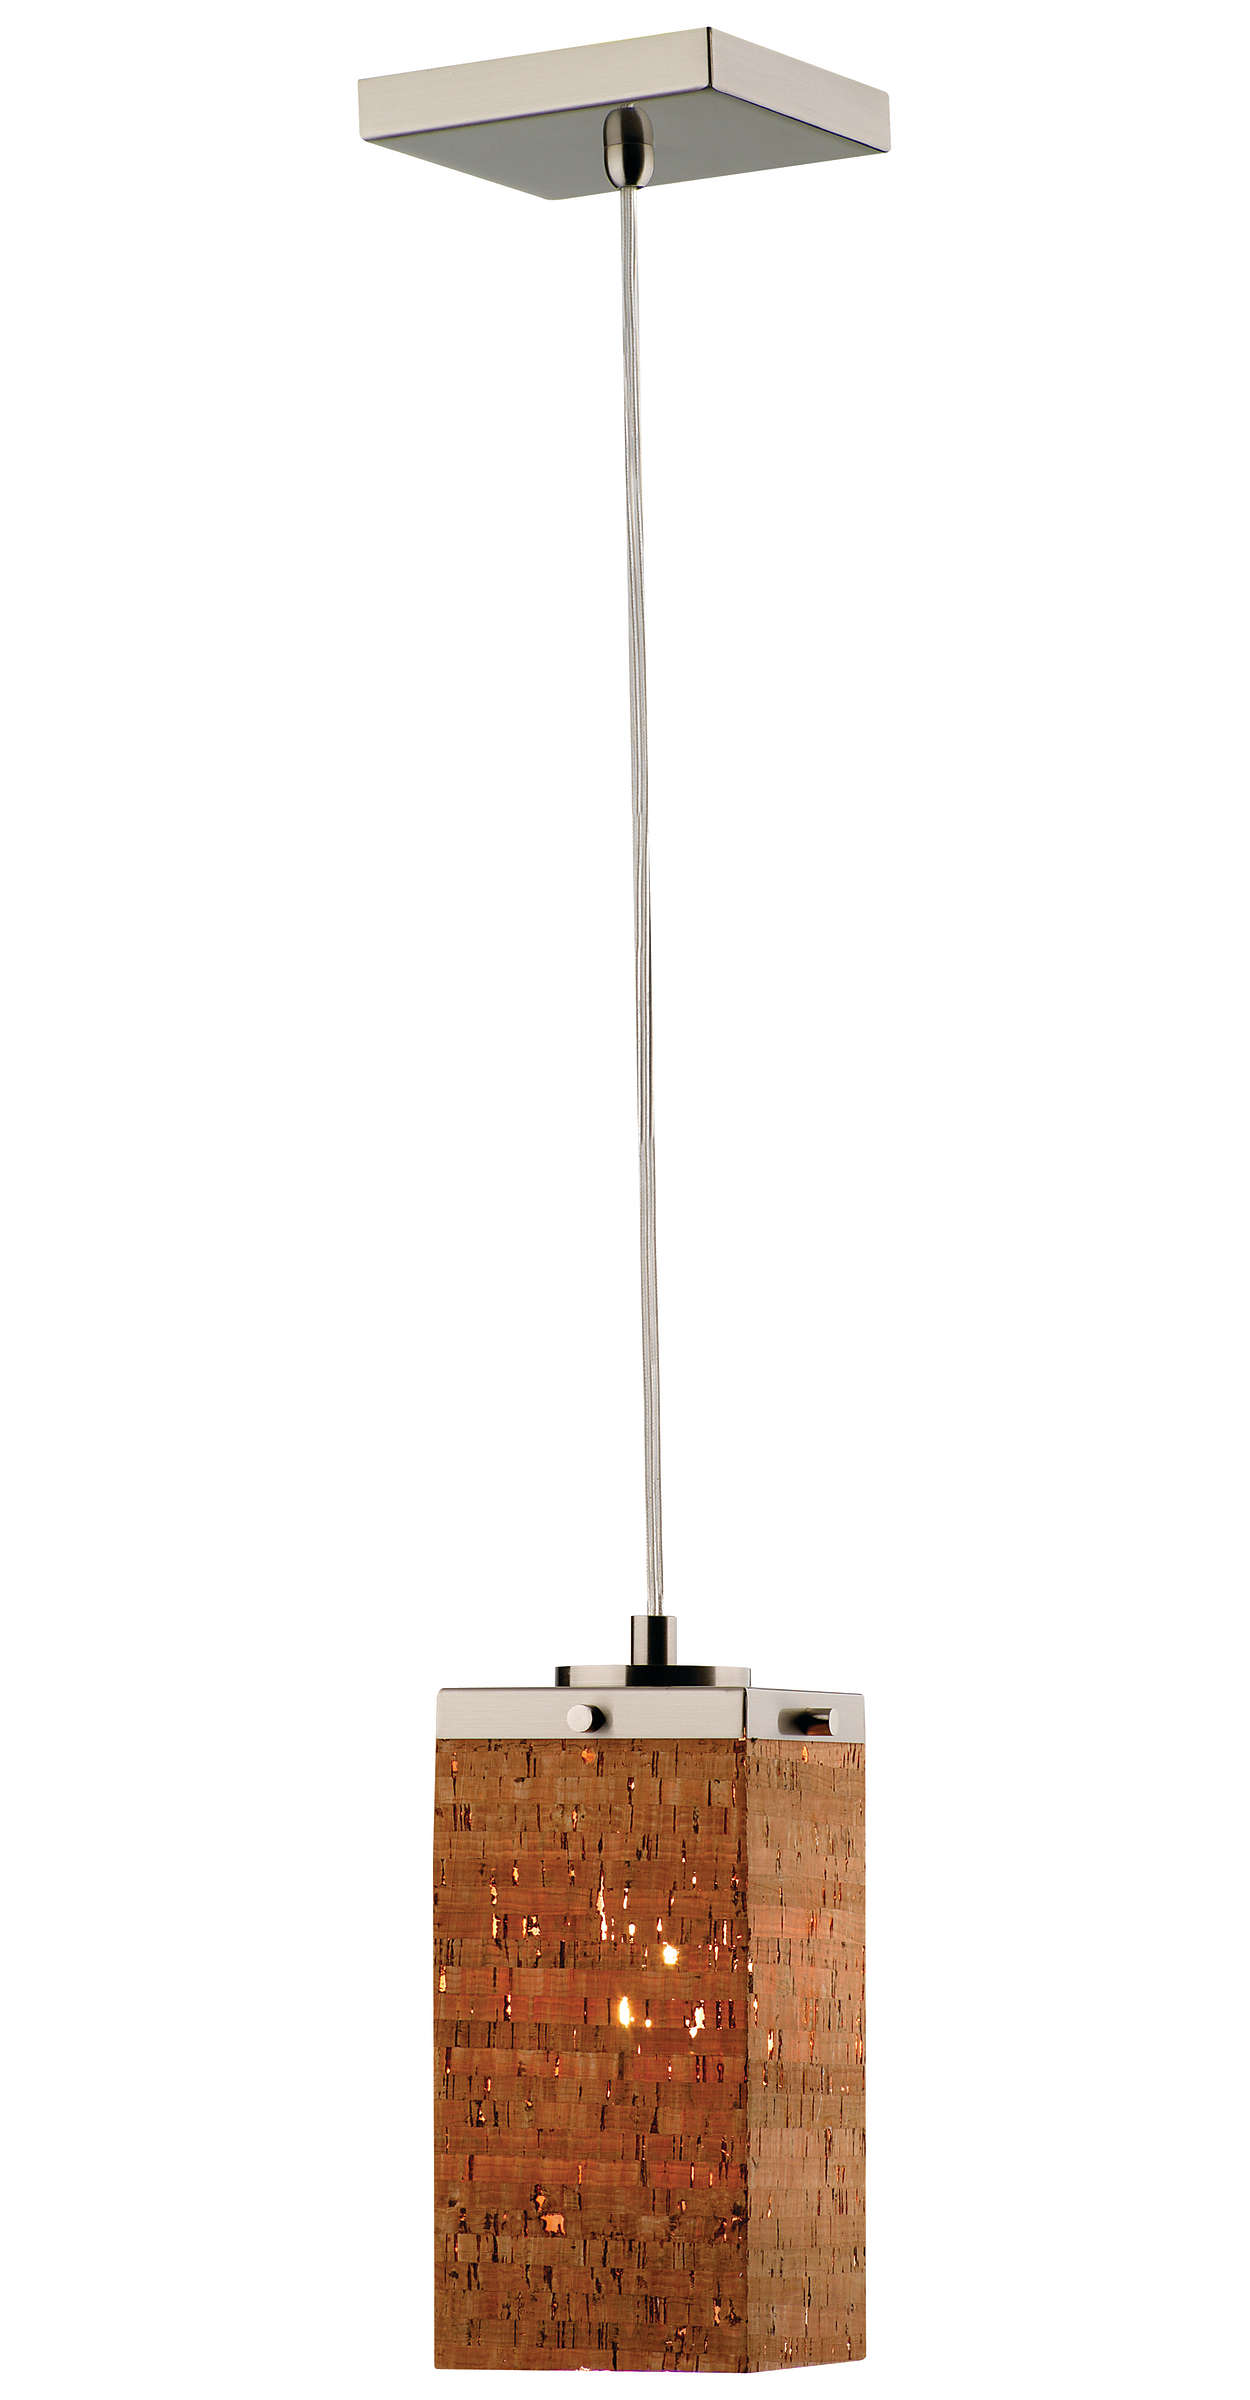 Alentejo 1-light Pendant in Satin Nickel finish